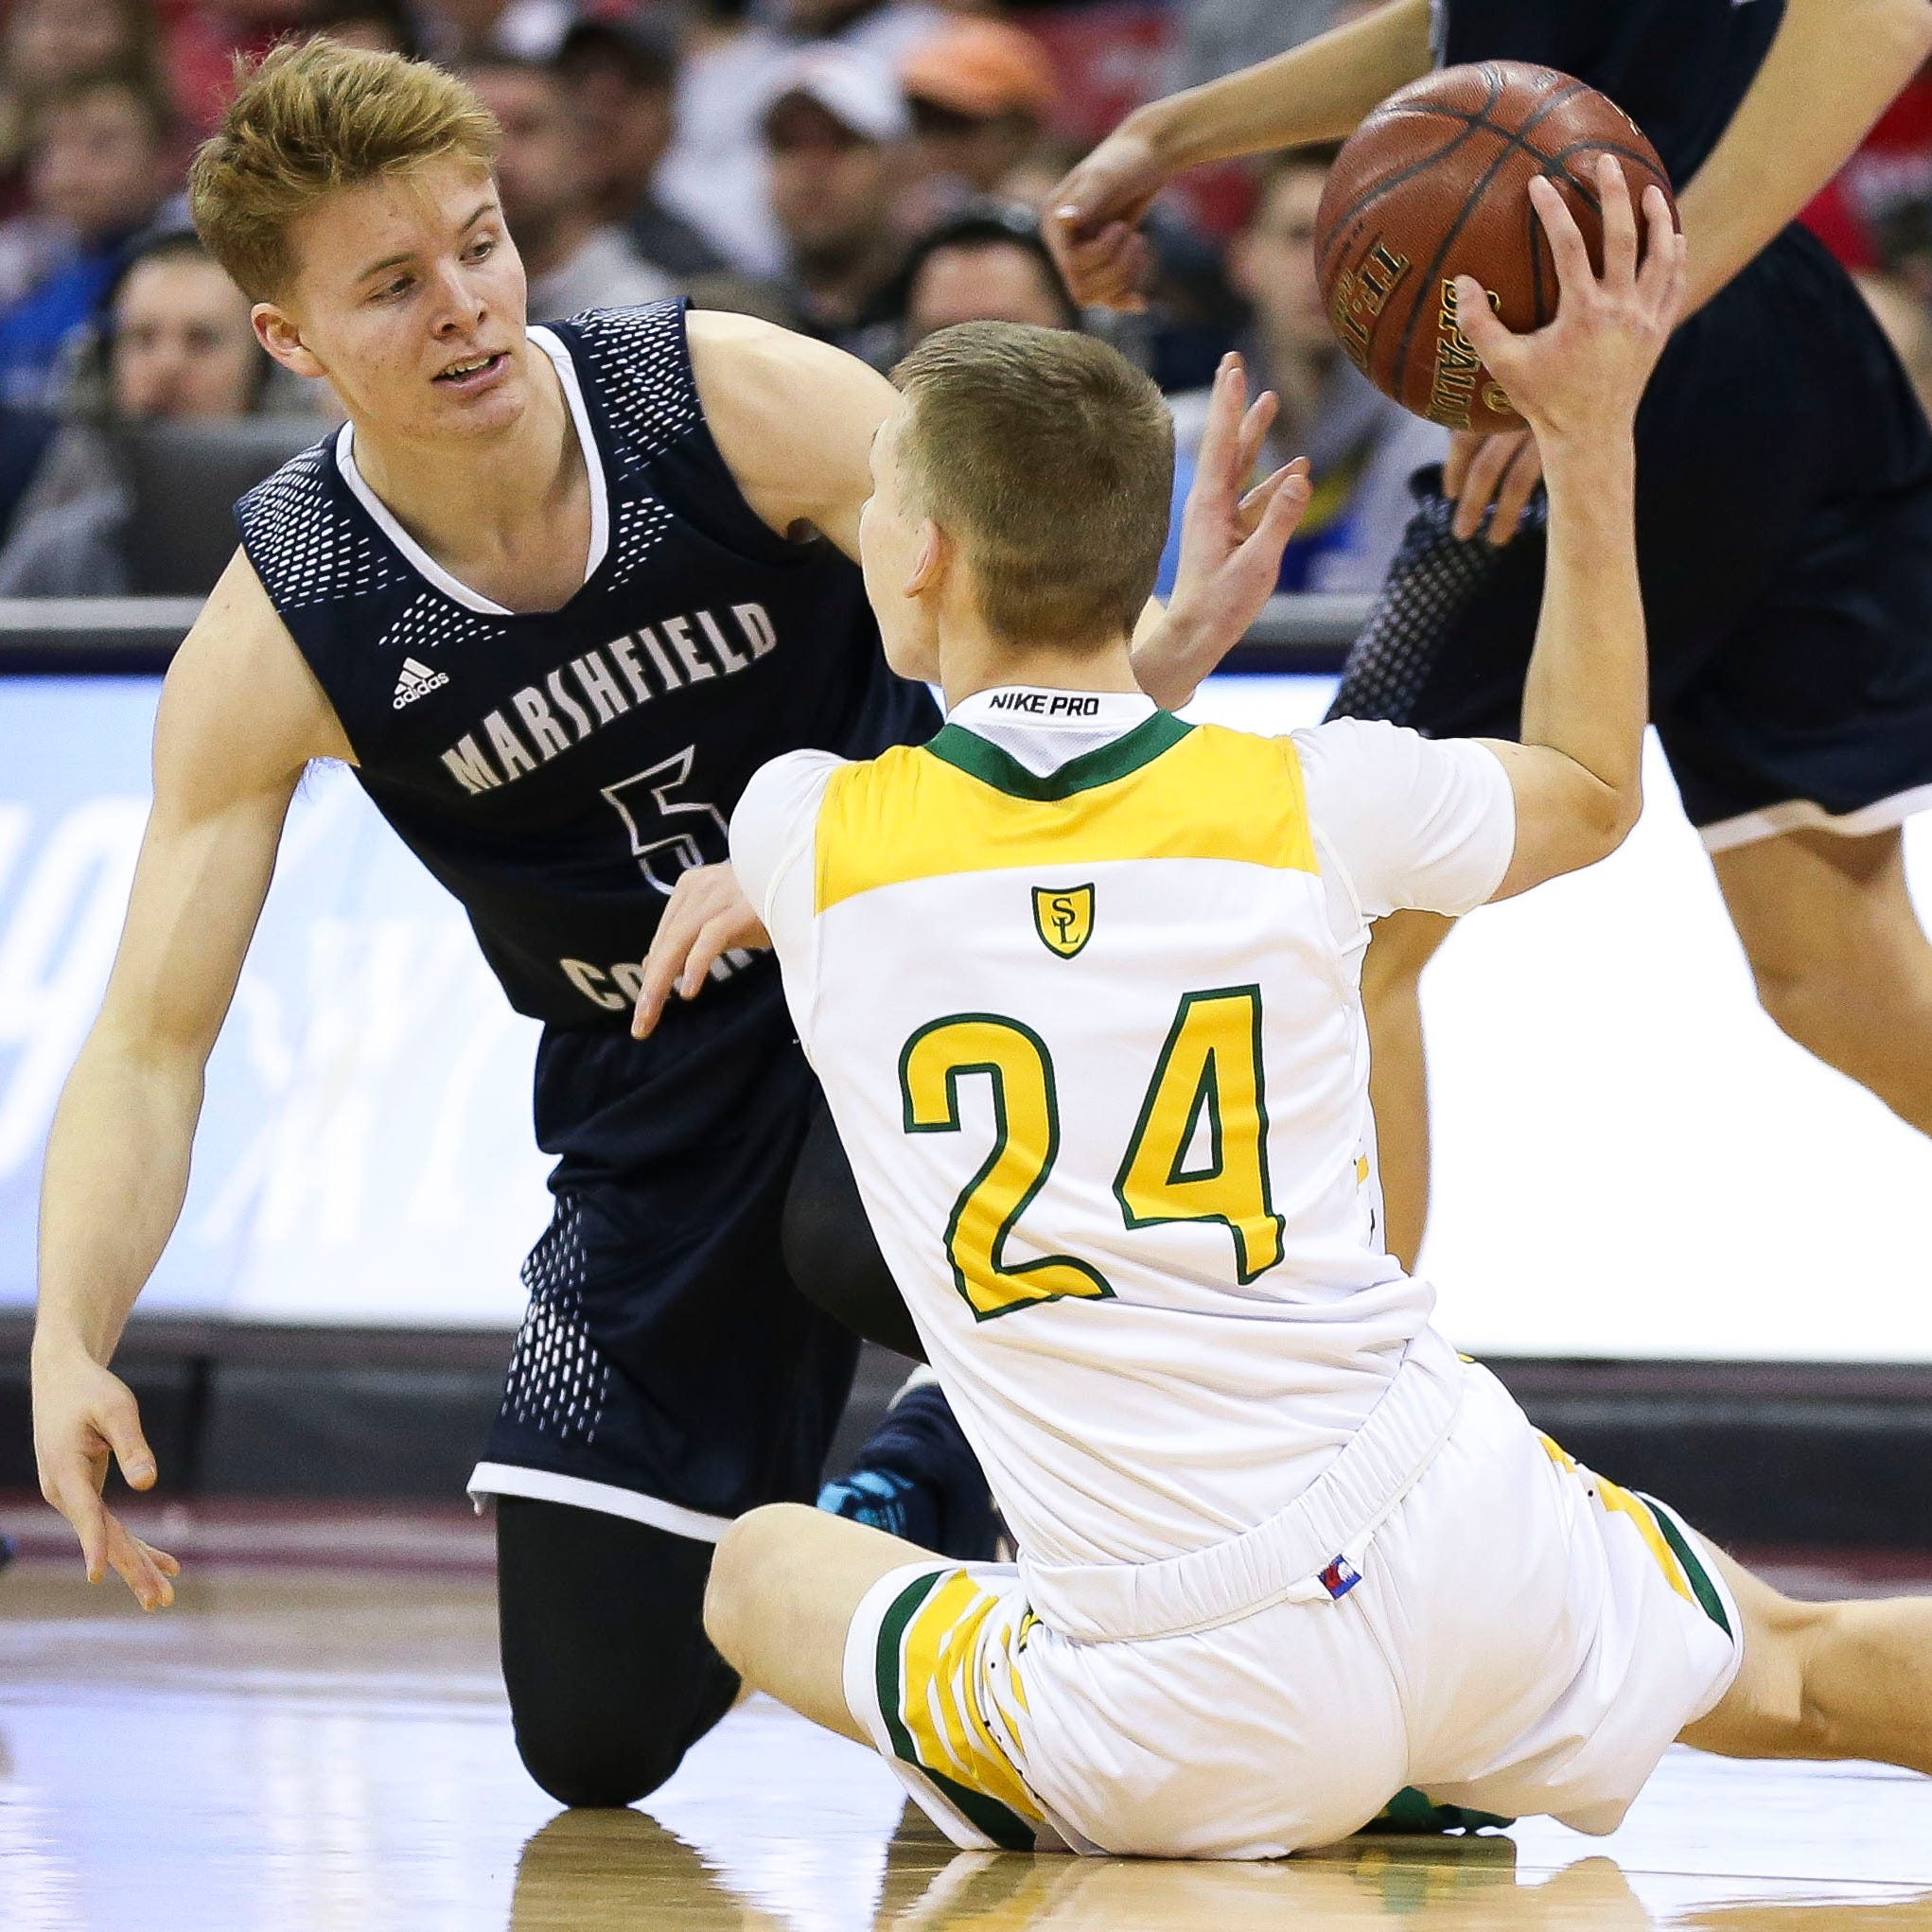 WIAA state basketball: Champions crowned in Divisions 1-5 at the Kohl Center in Madison